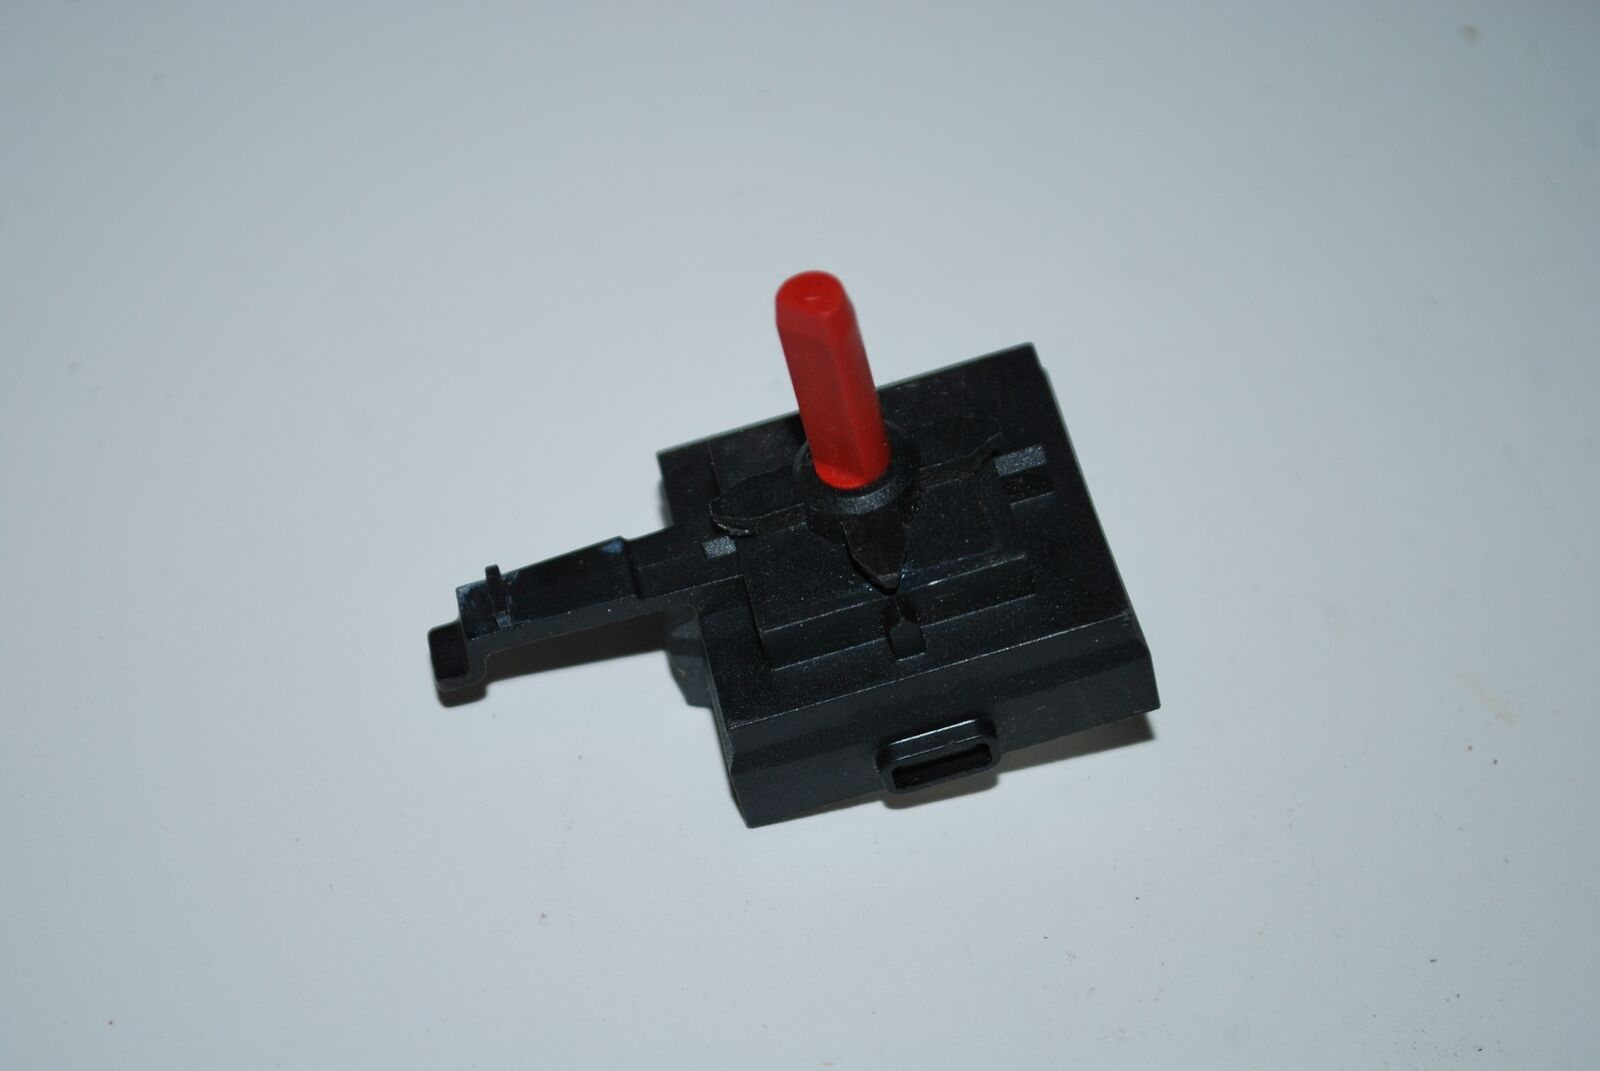 Details about WHIRLPOOL MAYTAG AMANA Washer Cycle Switch W10285517  AP5325702, 2209720